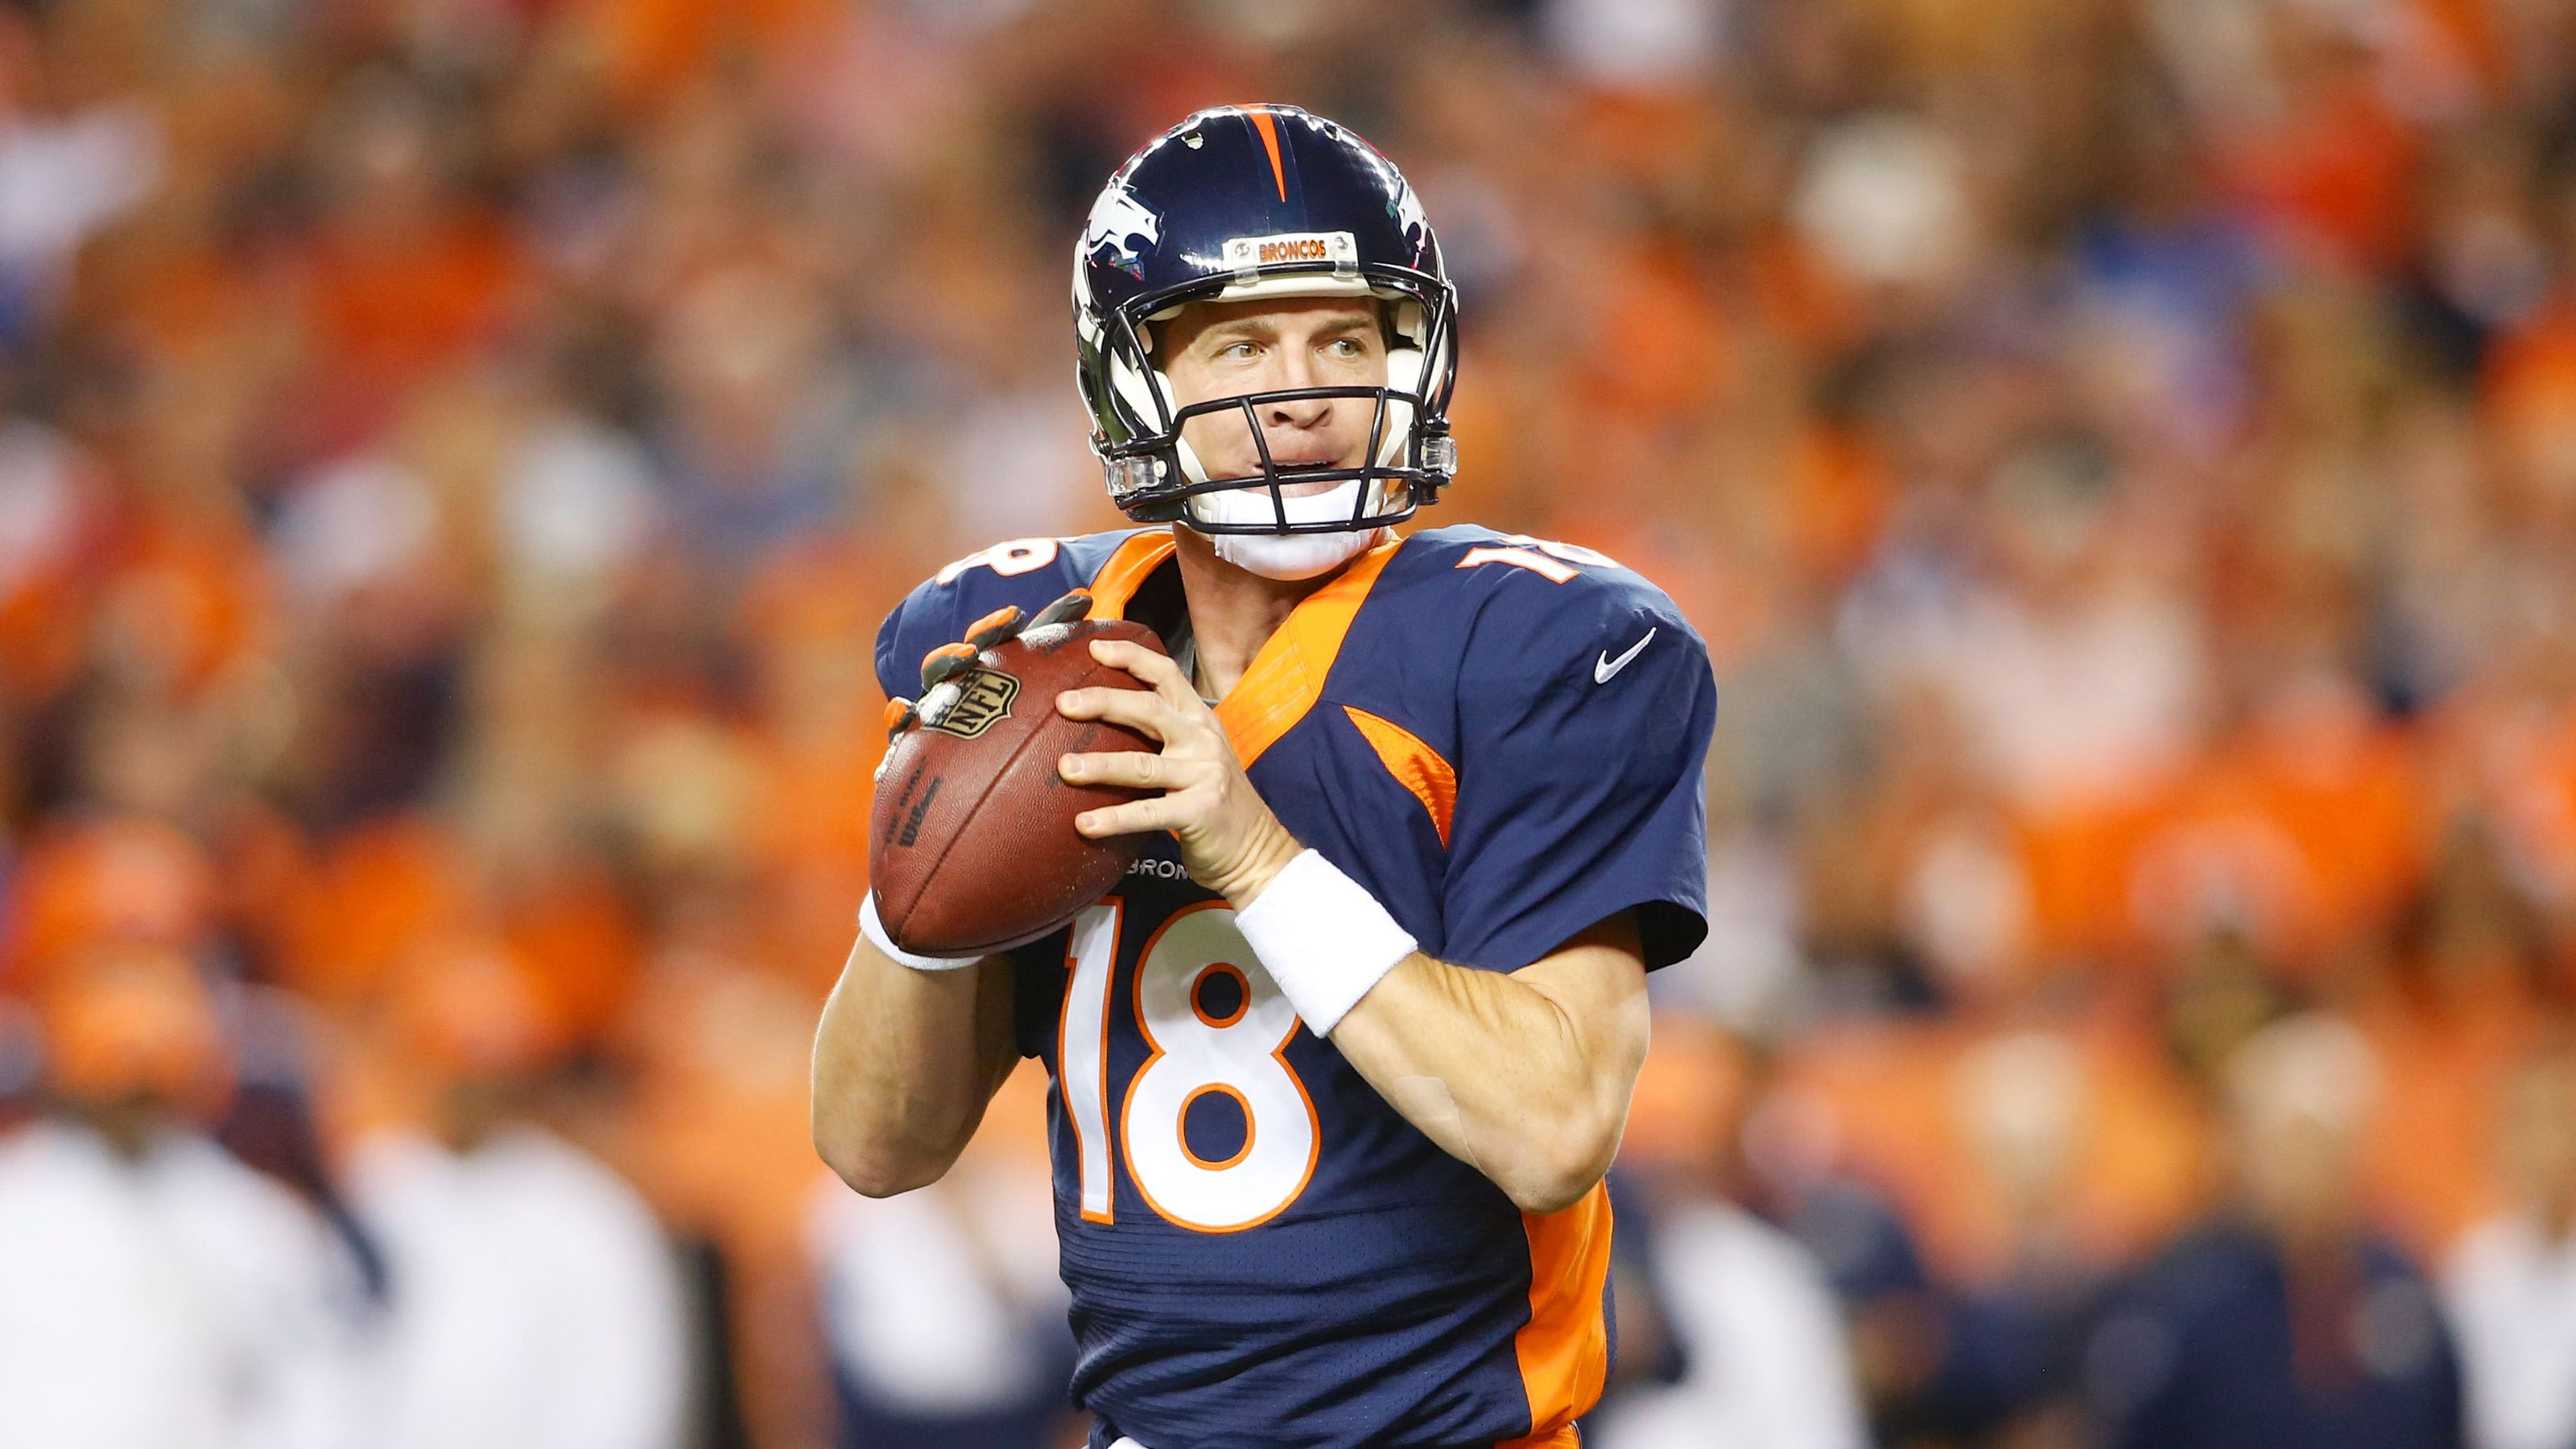 Peyton Manning Wallpapers High Quality